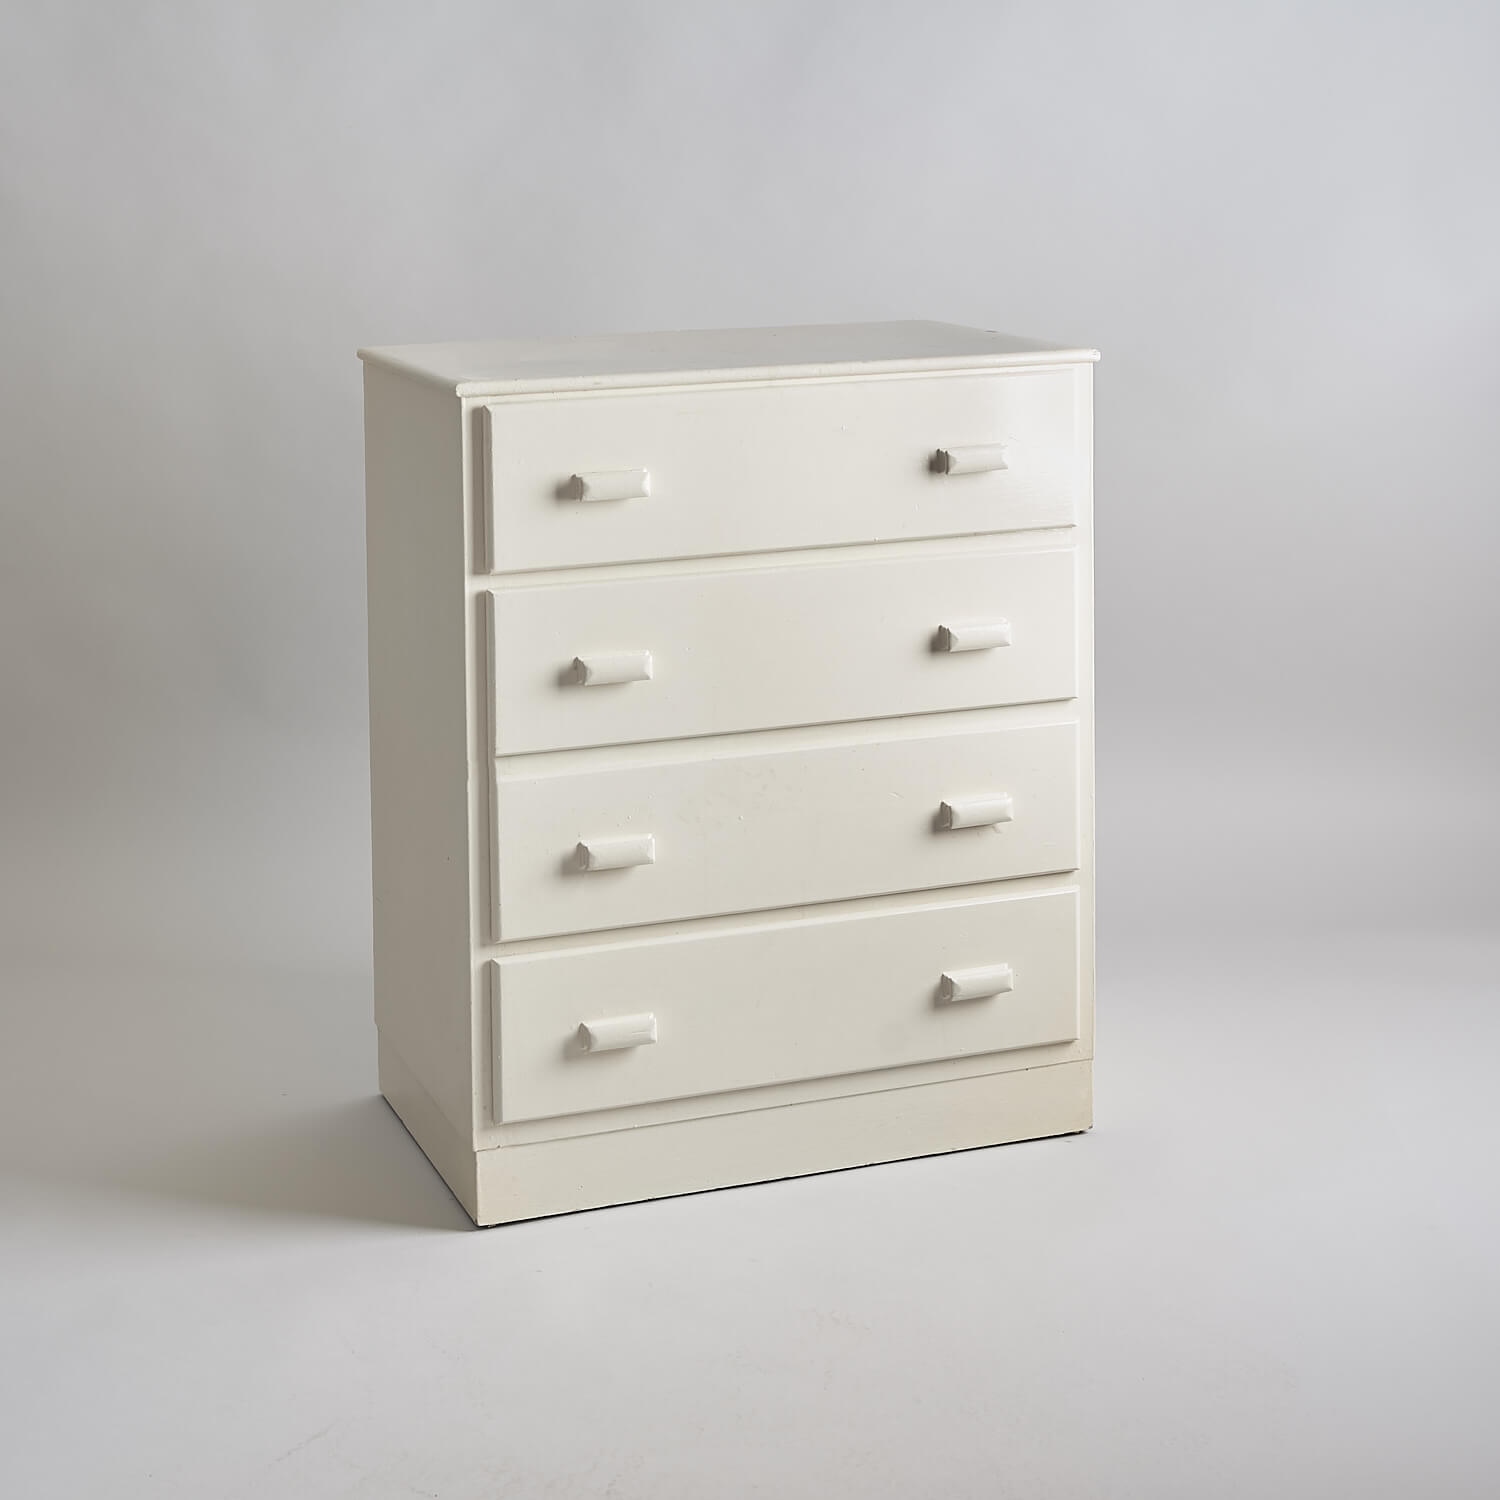 Mid century chest of drawers part of the studio's furniture range